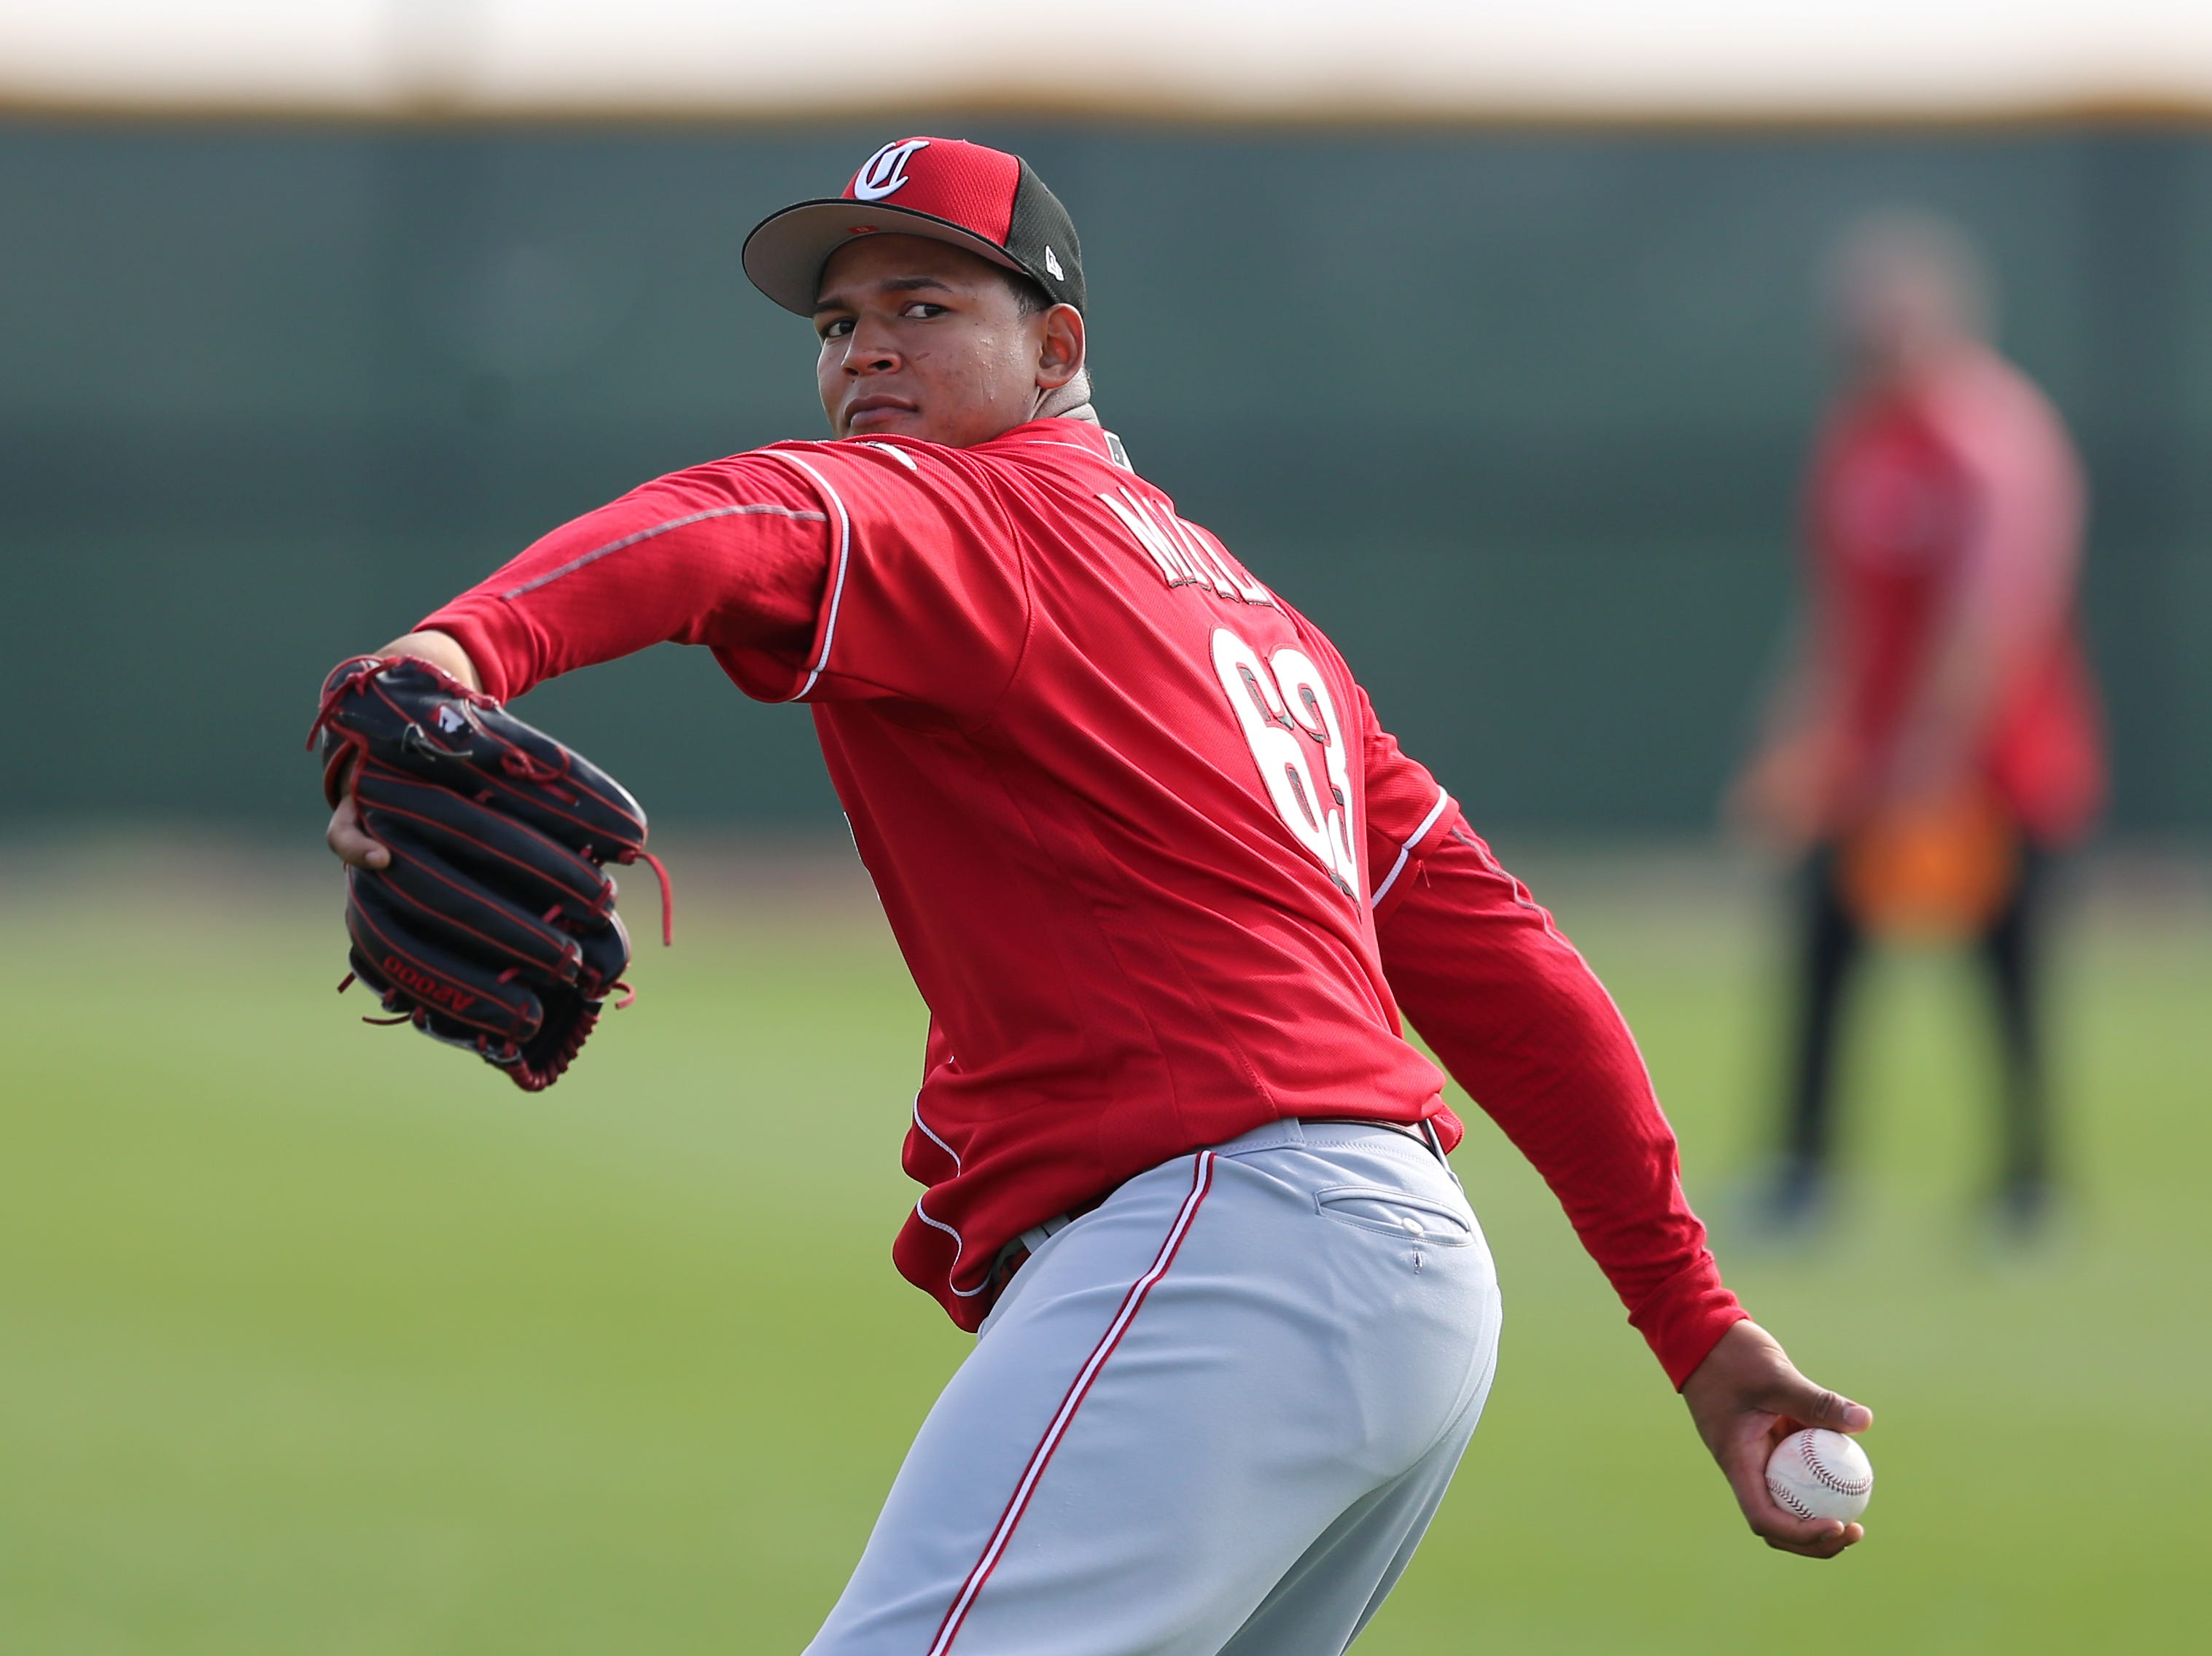 Cincinnati Reds pitcher Keury Mella (63) long tosses, Friday, Feb. 15, 2019, at the Cincinnati Reds spring training facility in Goodyear, Arizona.